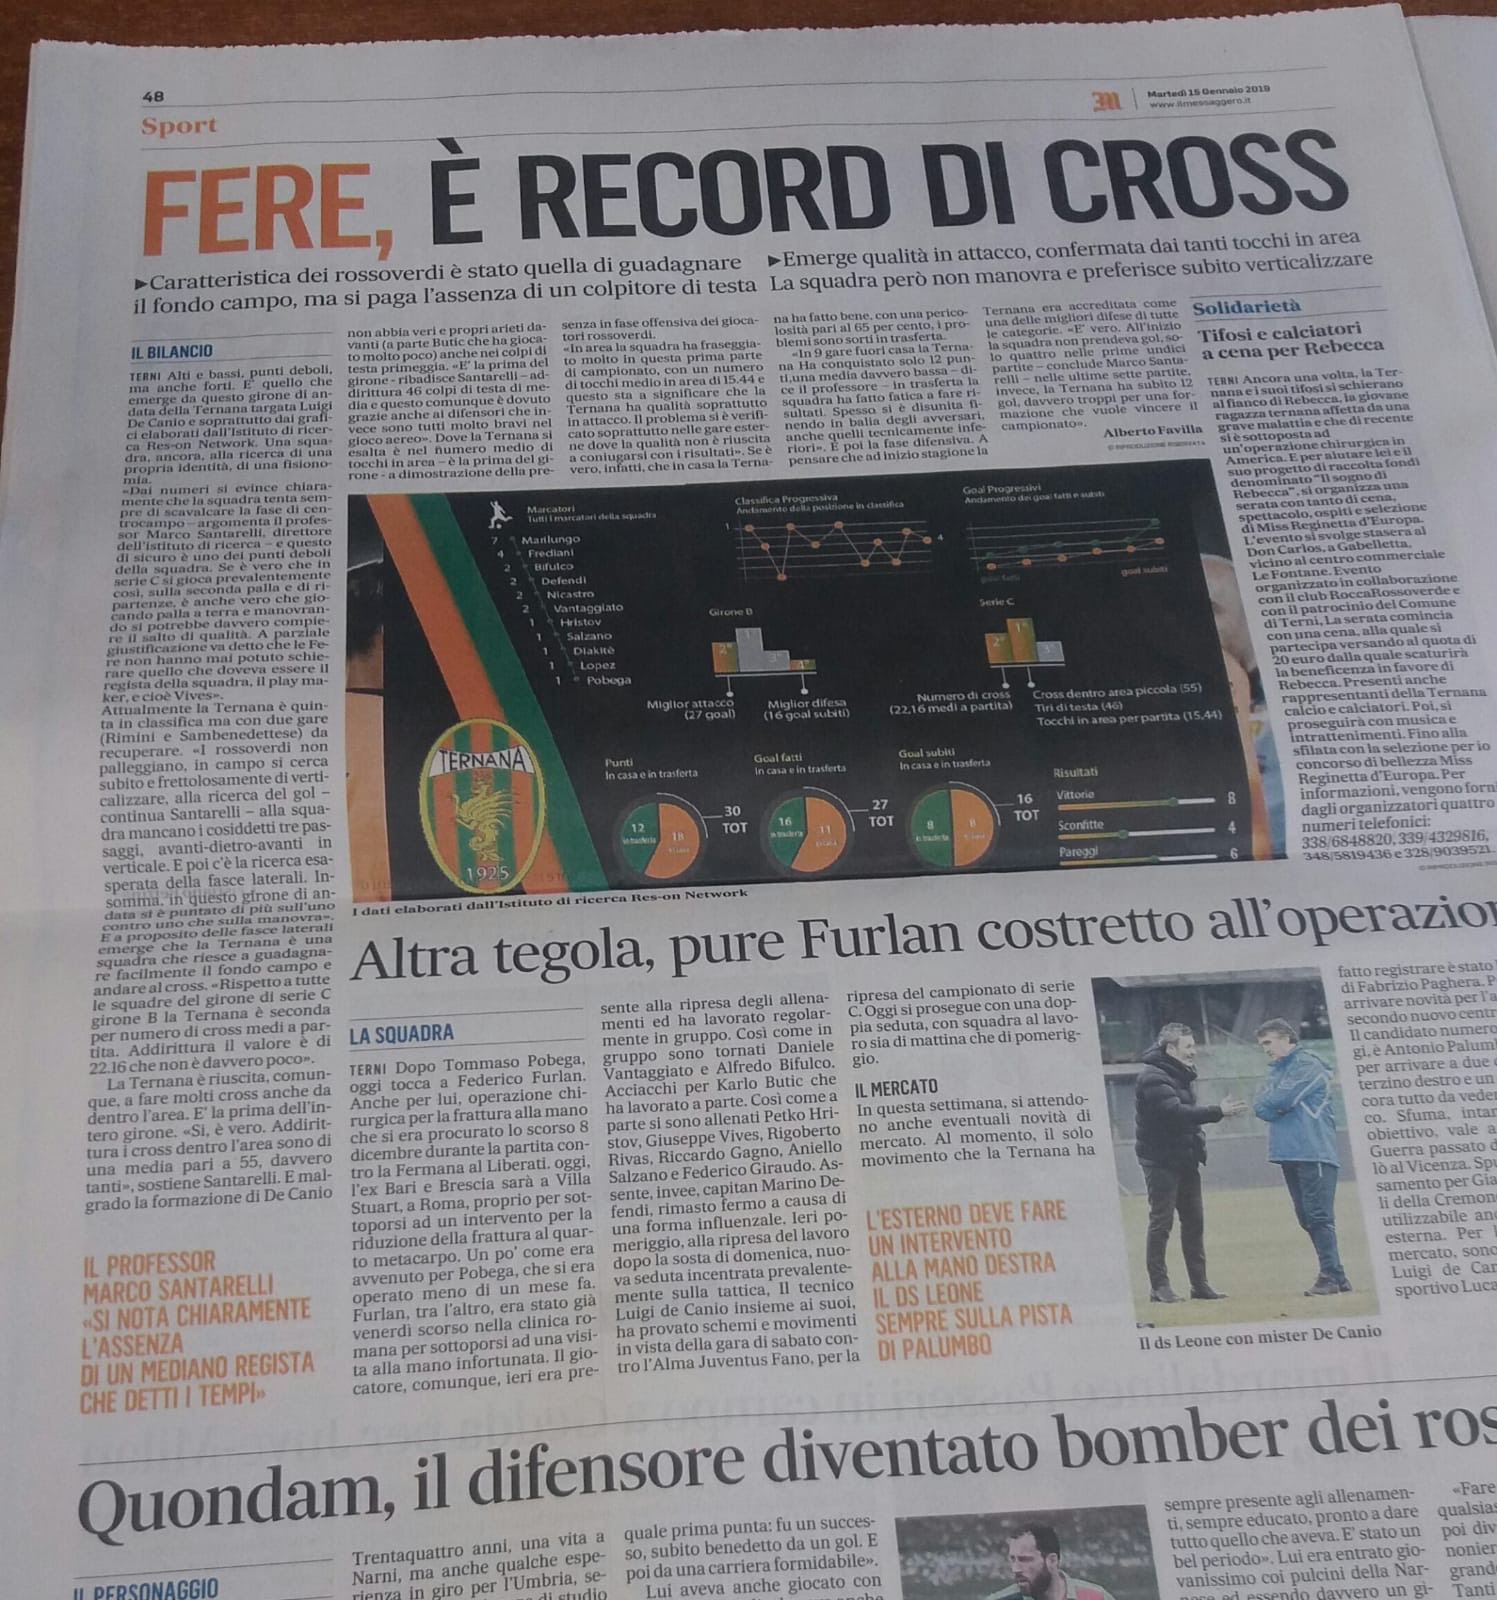 Il Messaggero I dati elaborati da Res On Network per la Ternana